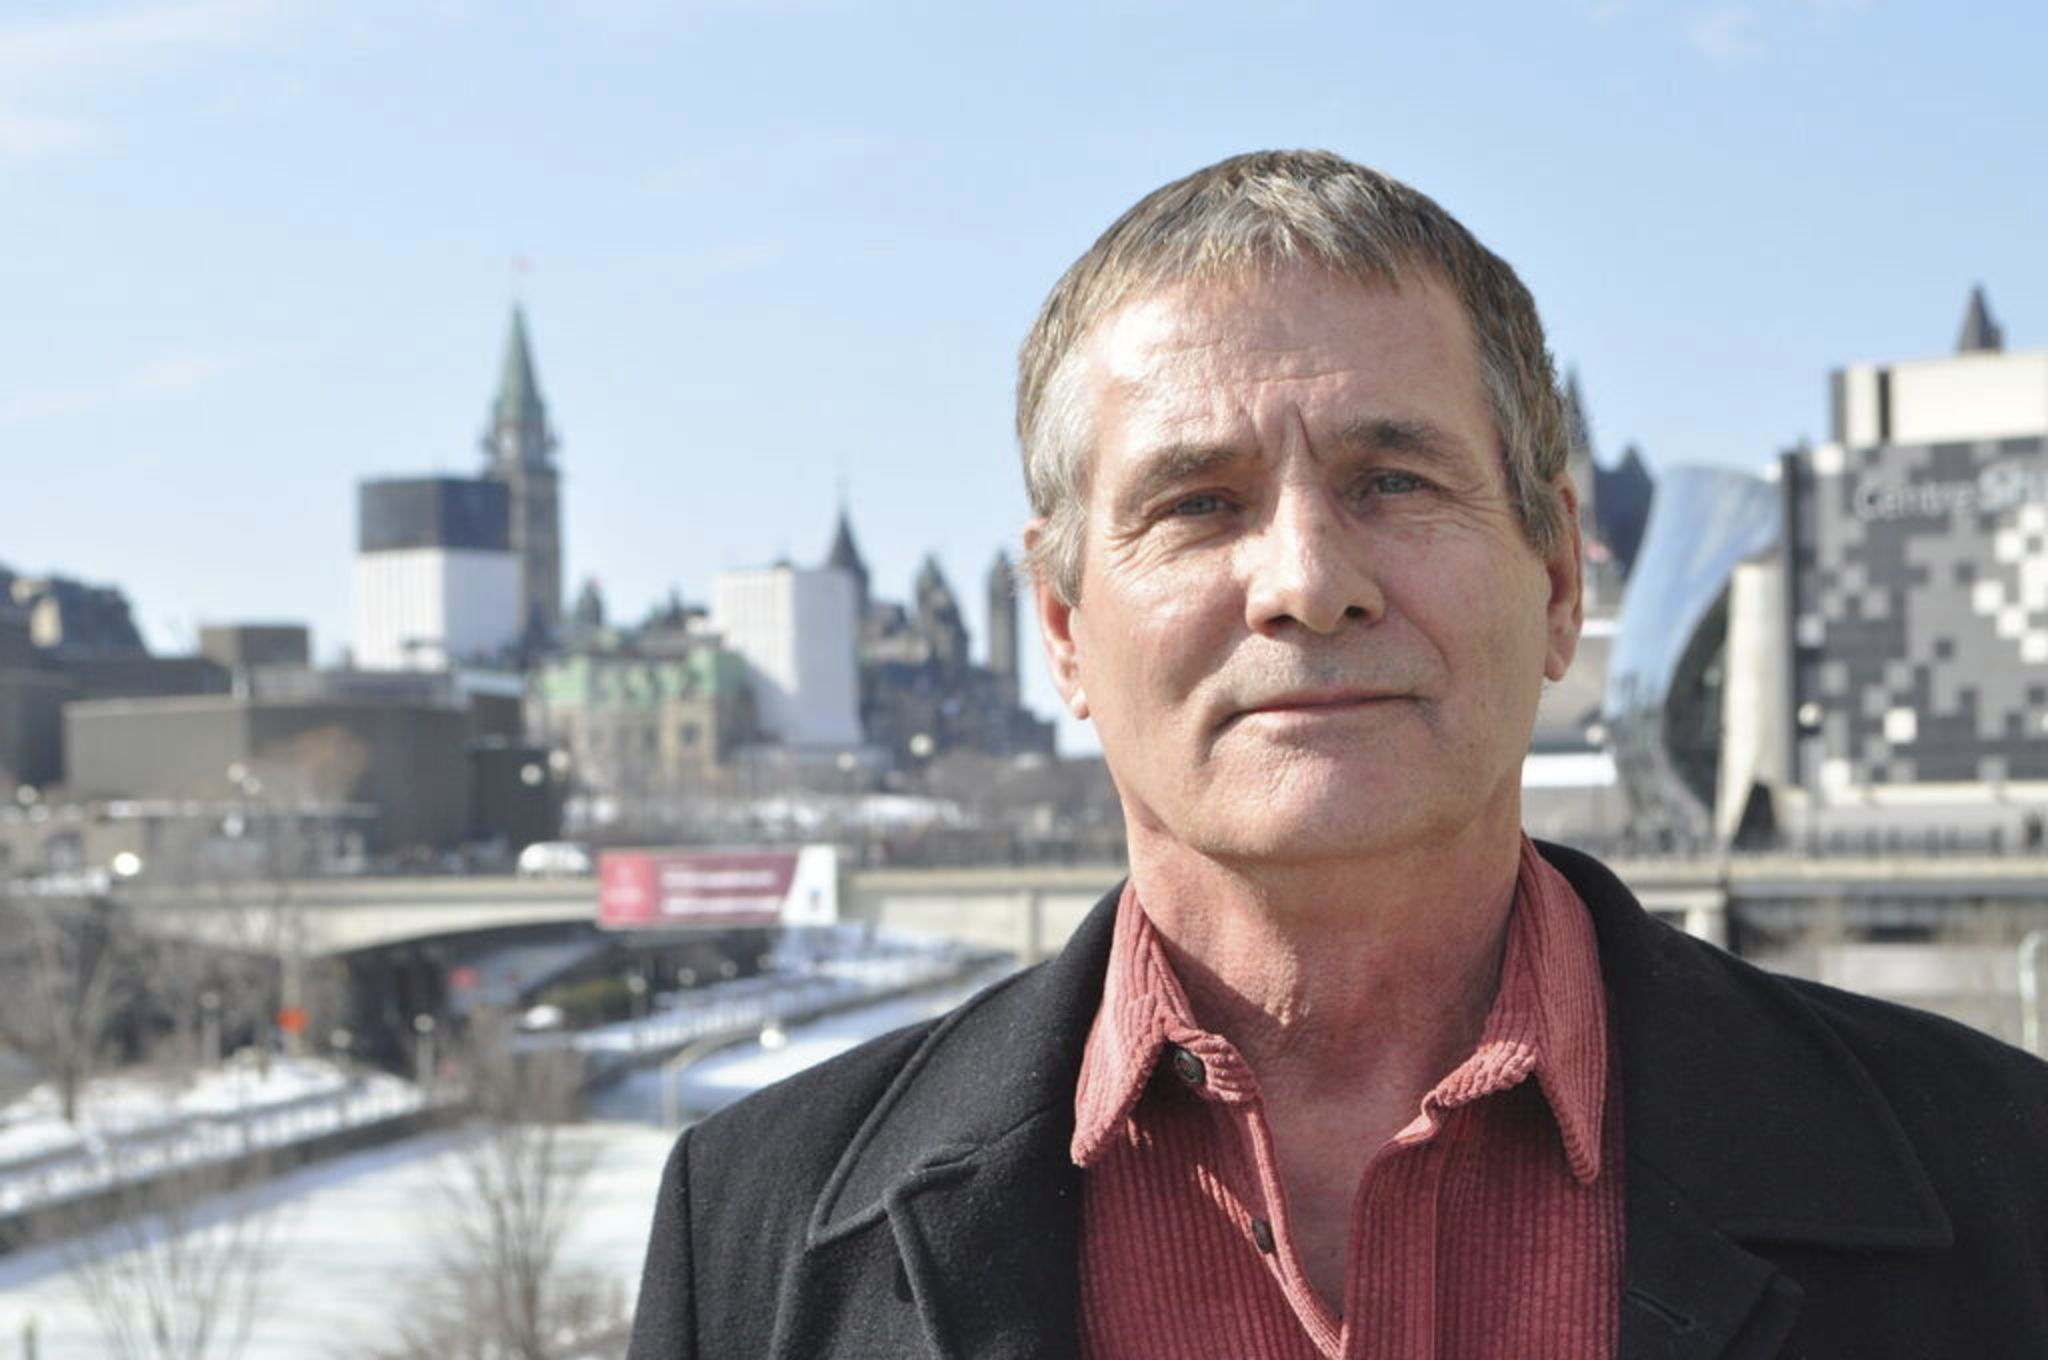 DYLAN ROBERTSON / WINNIPEG FREE PRESS FILES</p><p>David Milgaard is pushing for a formal process for those who feel they've been wrongfully convicted to apply for a review.</p>